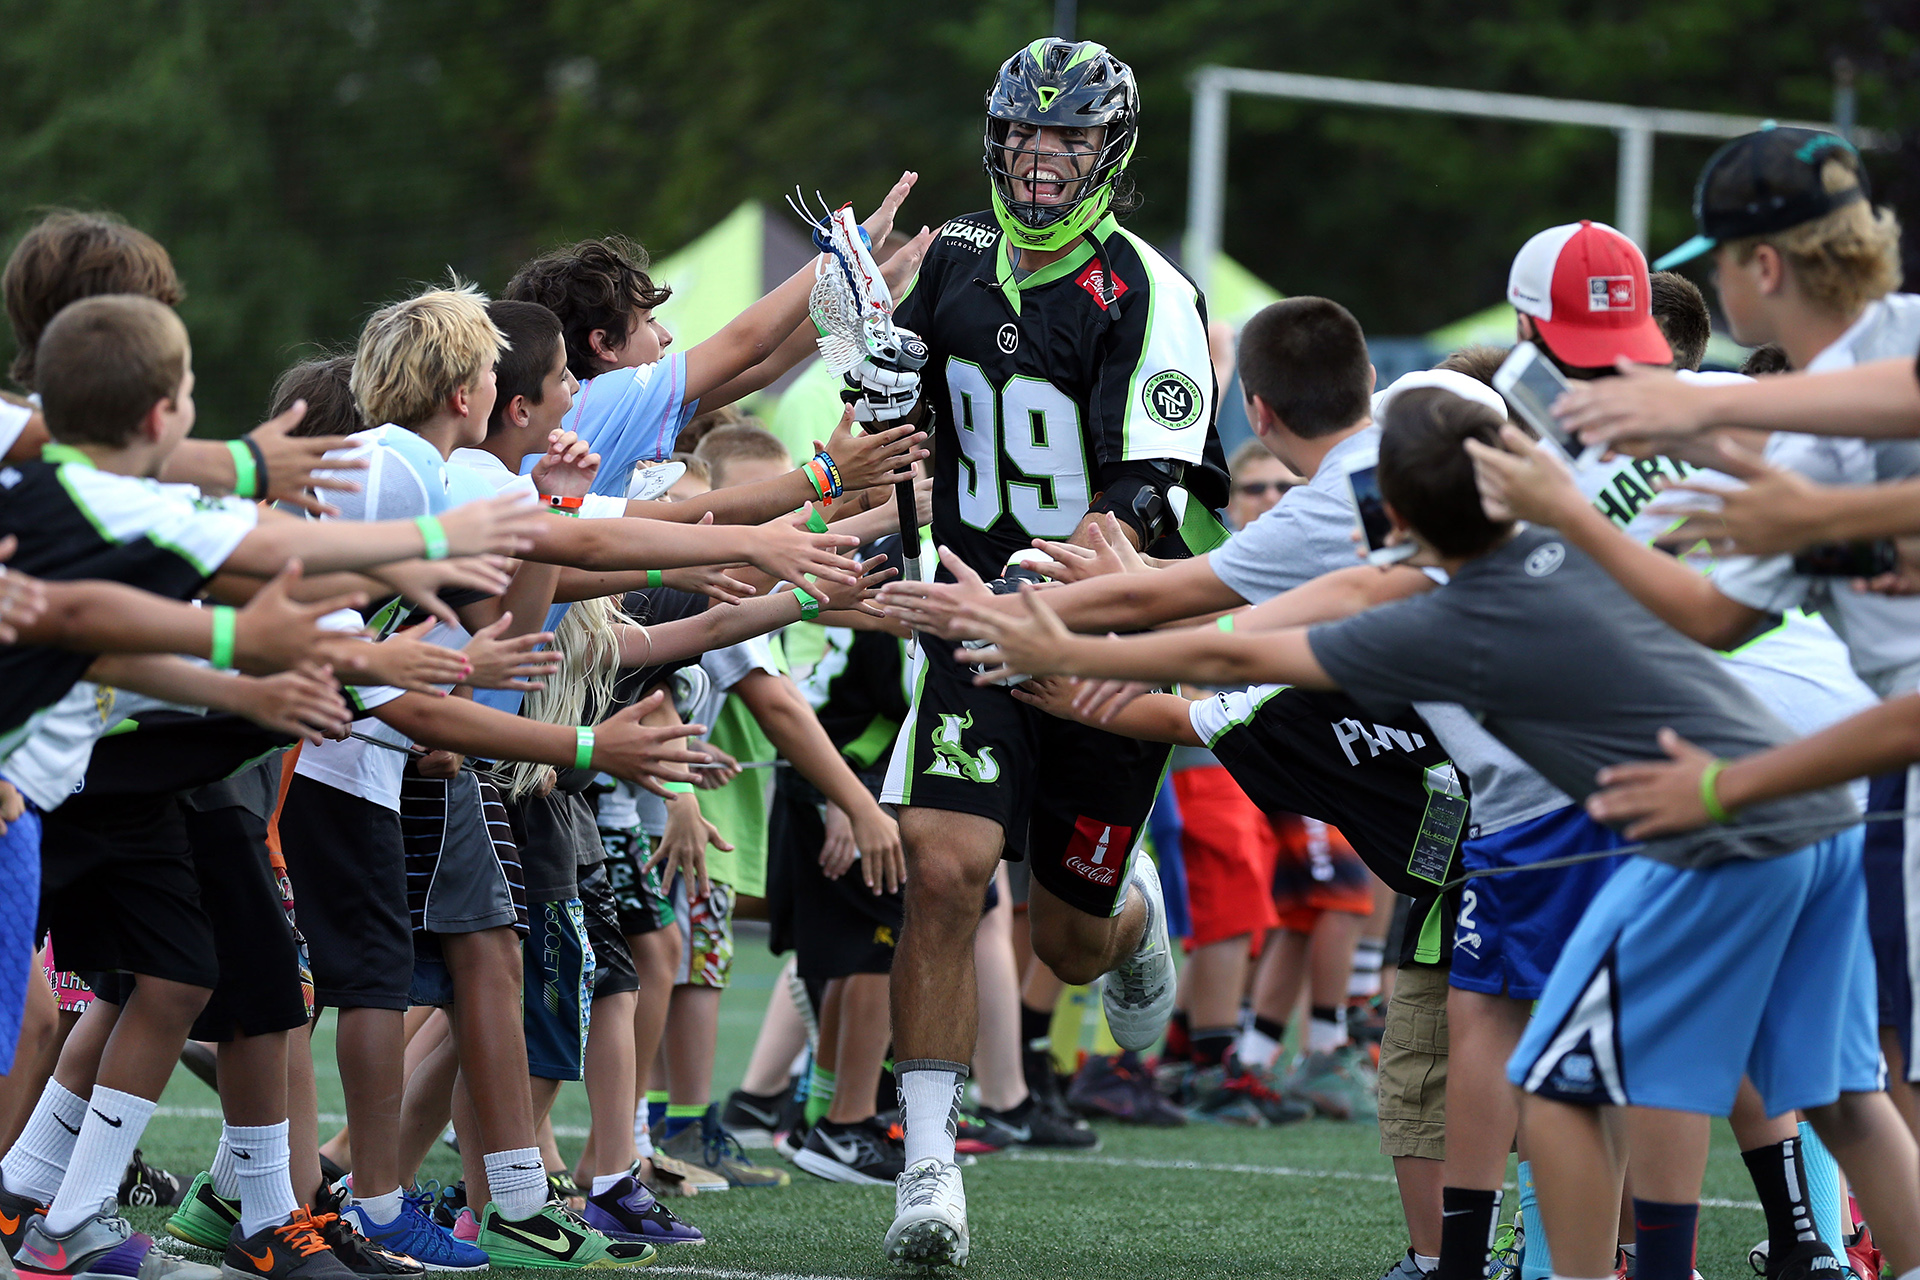 HEMPSTEAD, NY - AUGUST 1: Paul Rabil #99 of the New York Lizards is announced prior to taking on the Boston Cannons at James M. Shuart Stadium on August 1, 2015 in Hempstead, New York. (Photo by Adam Hunger/Getty Images)